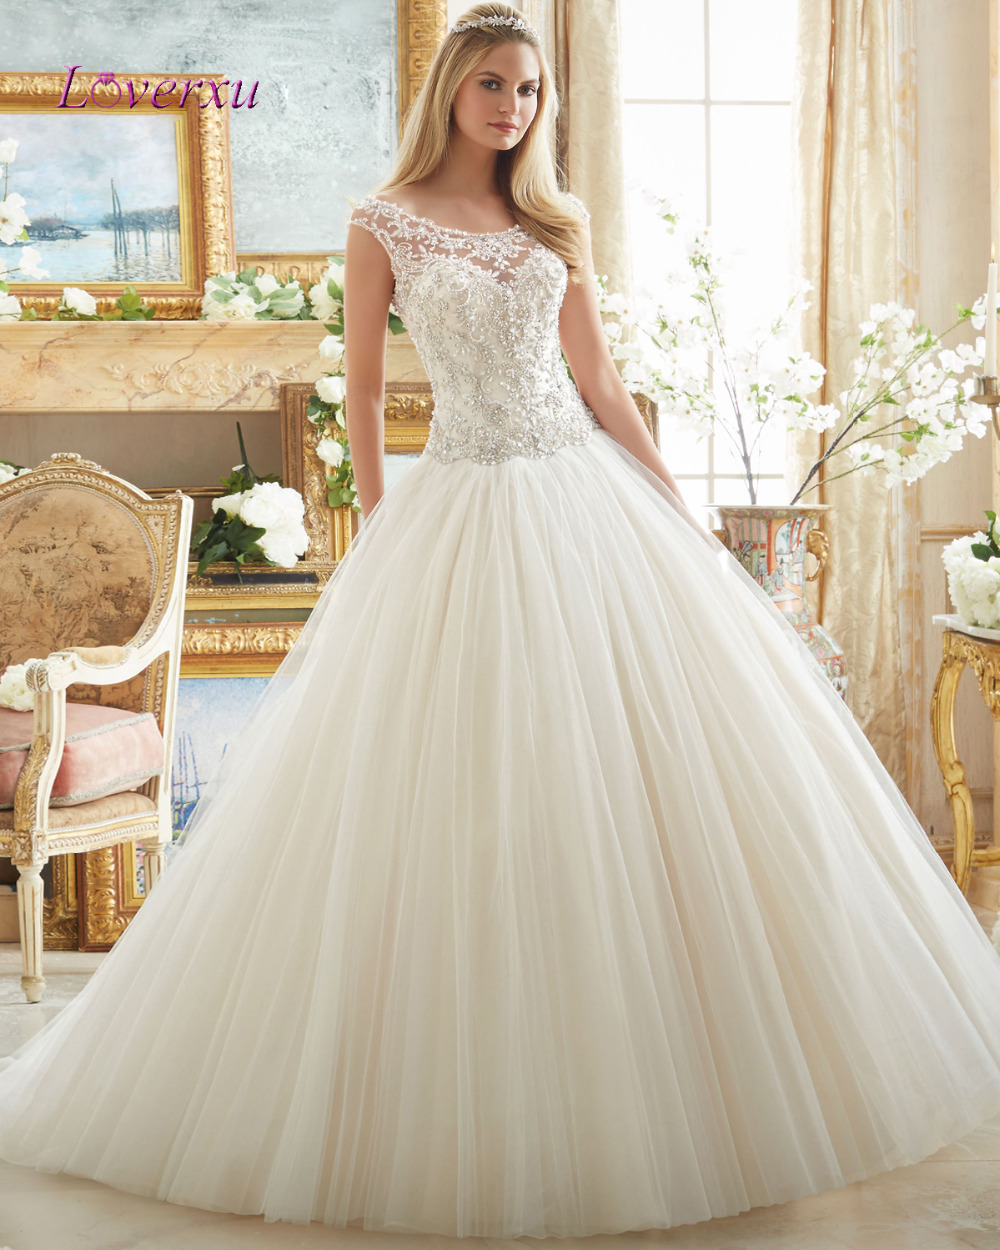 Vintage Wedding Dress Websites : Loverxu romantic scalloped luxury appliques ball